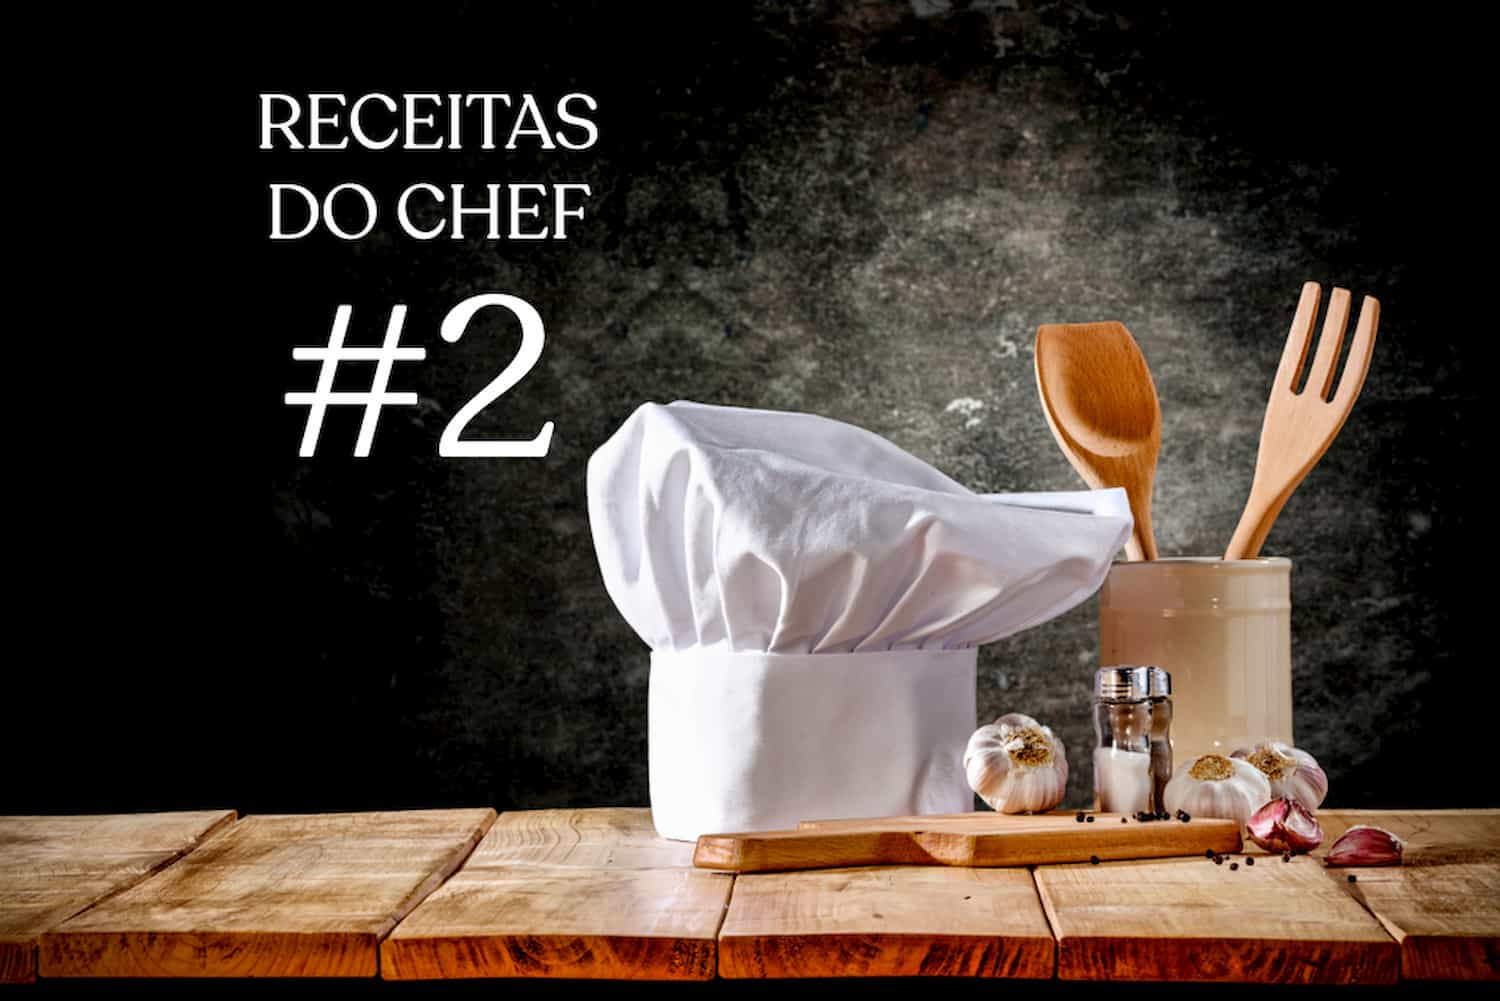 #2 Receitas do chef - Ceviche